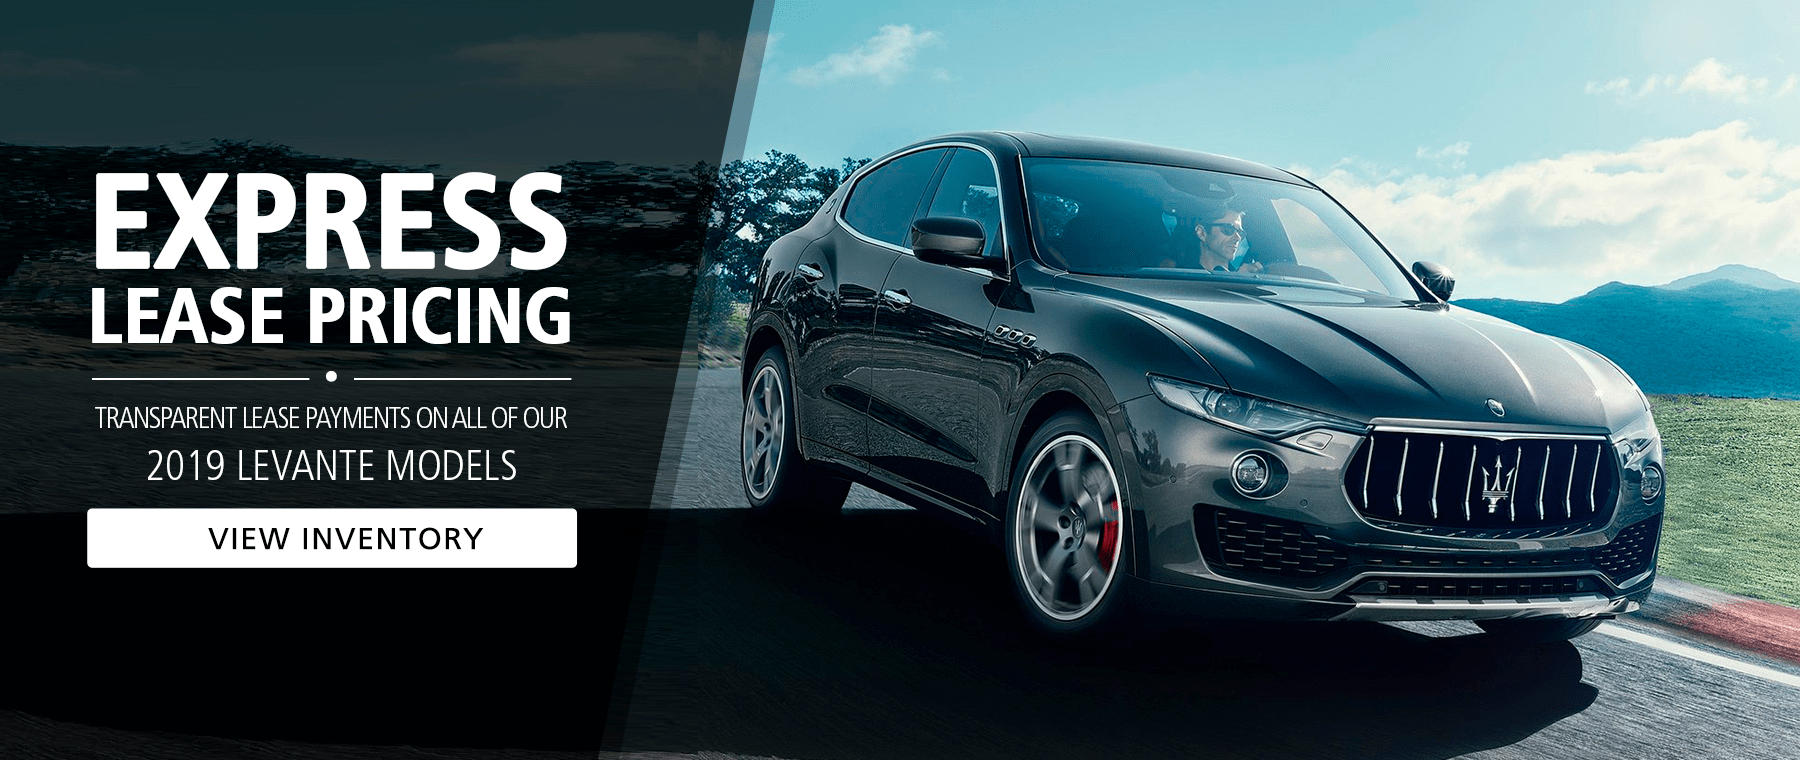 Special Lease Pricing - Maserati Levante